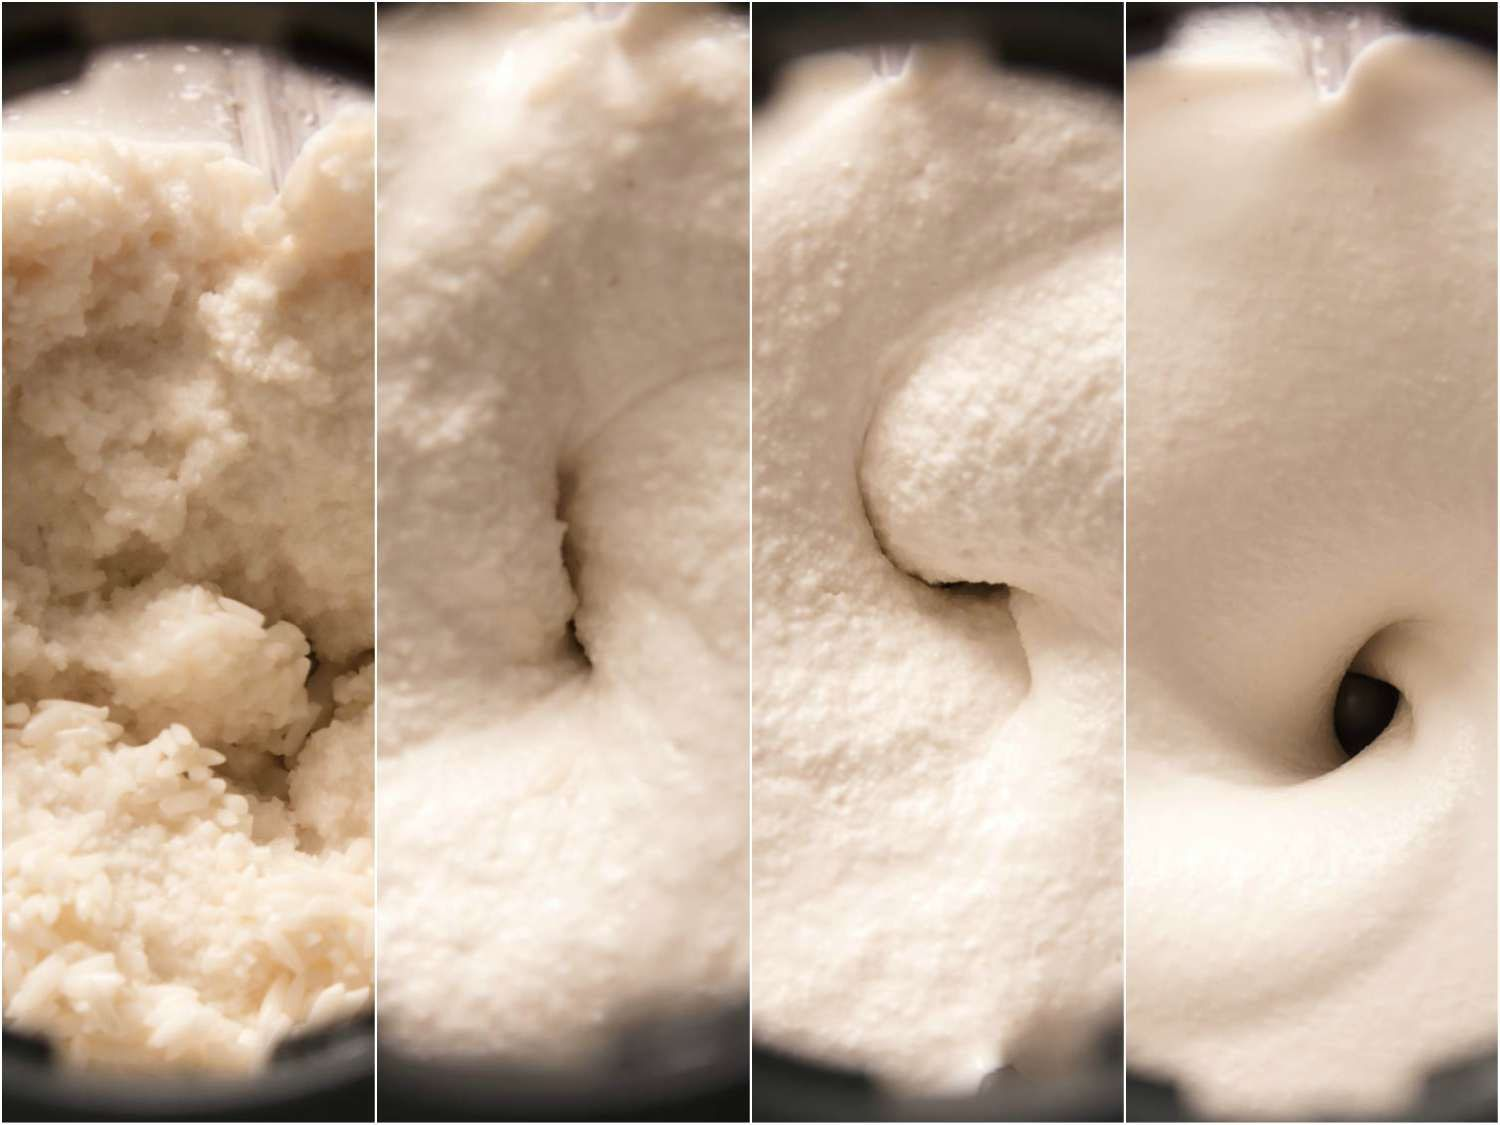 Collage showing four stages of blending dosa batter, from grainy to smooth